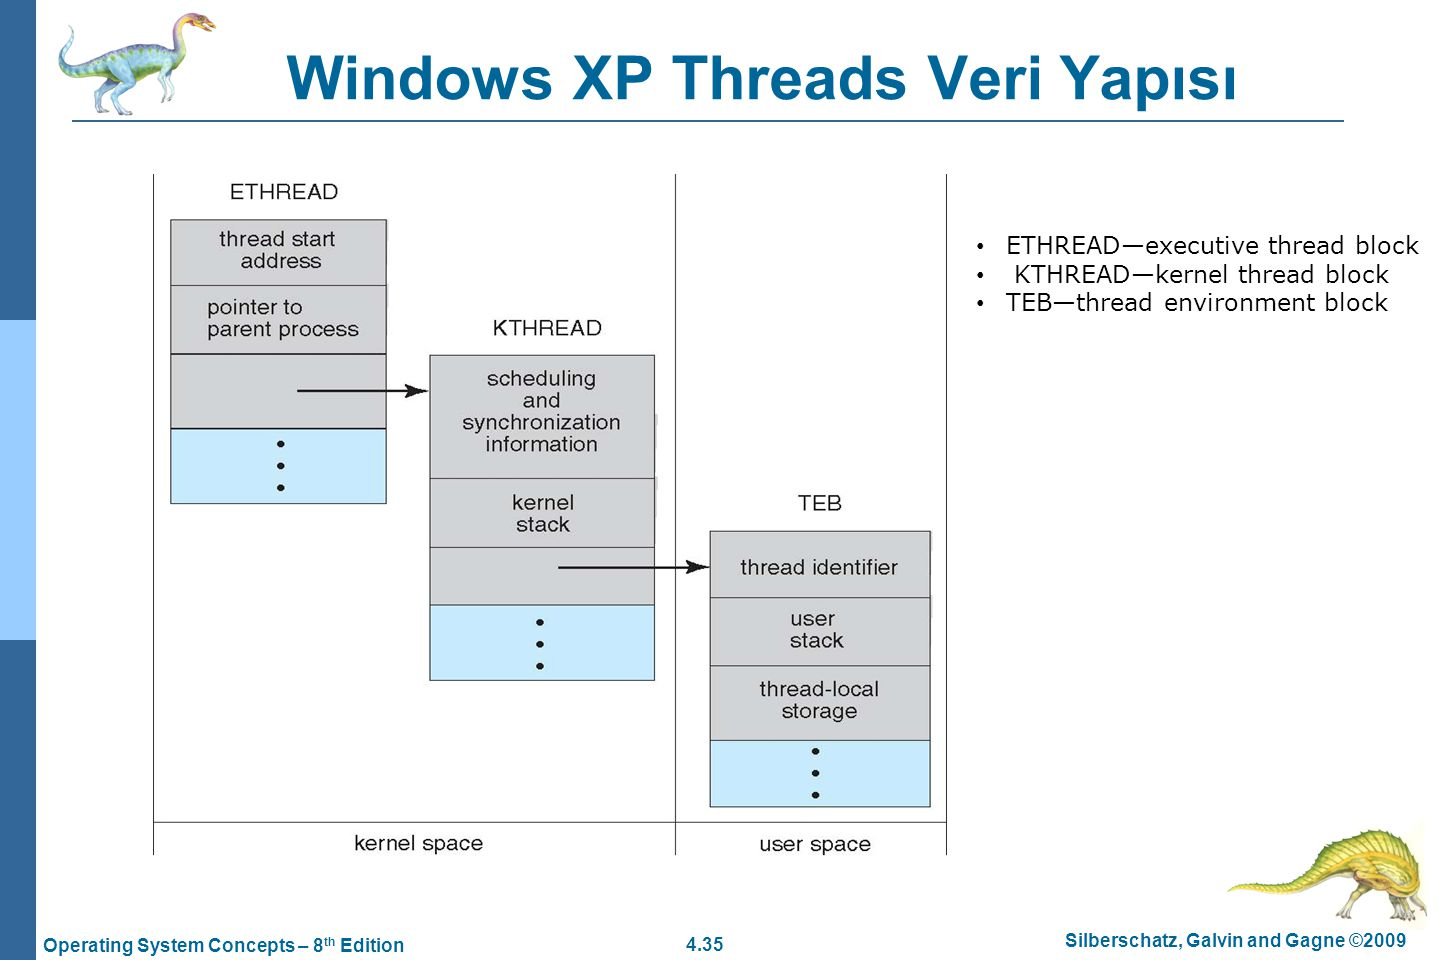 Windows XP Threads Veri Yapısı